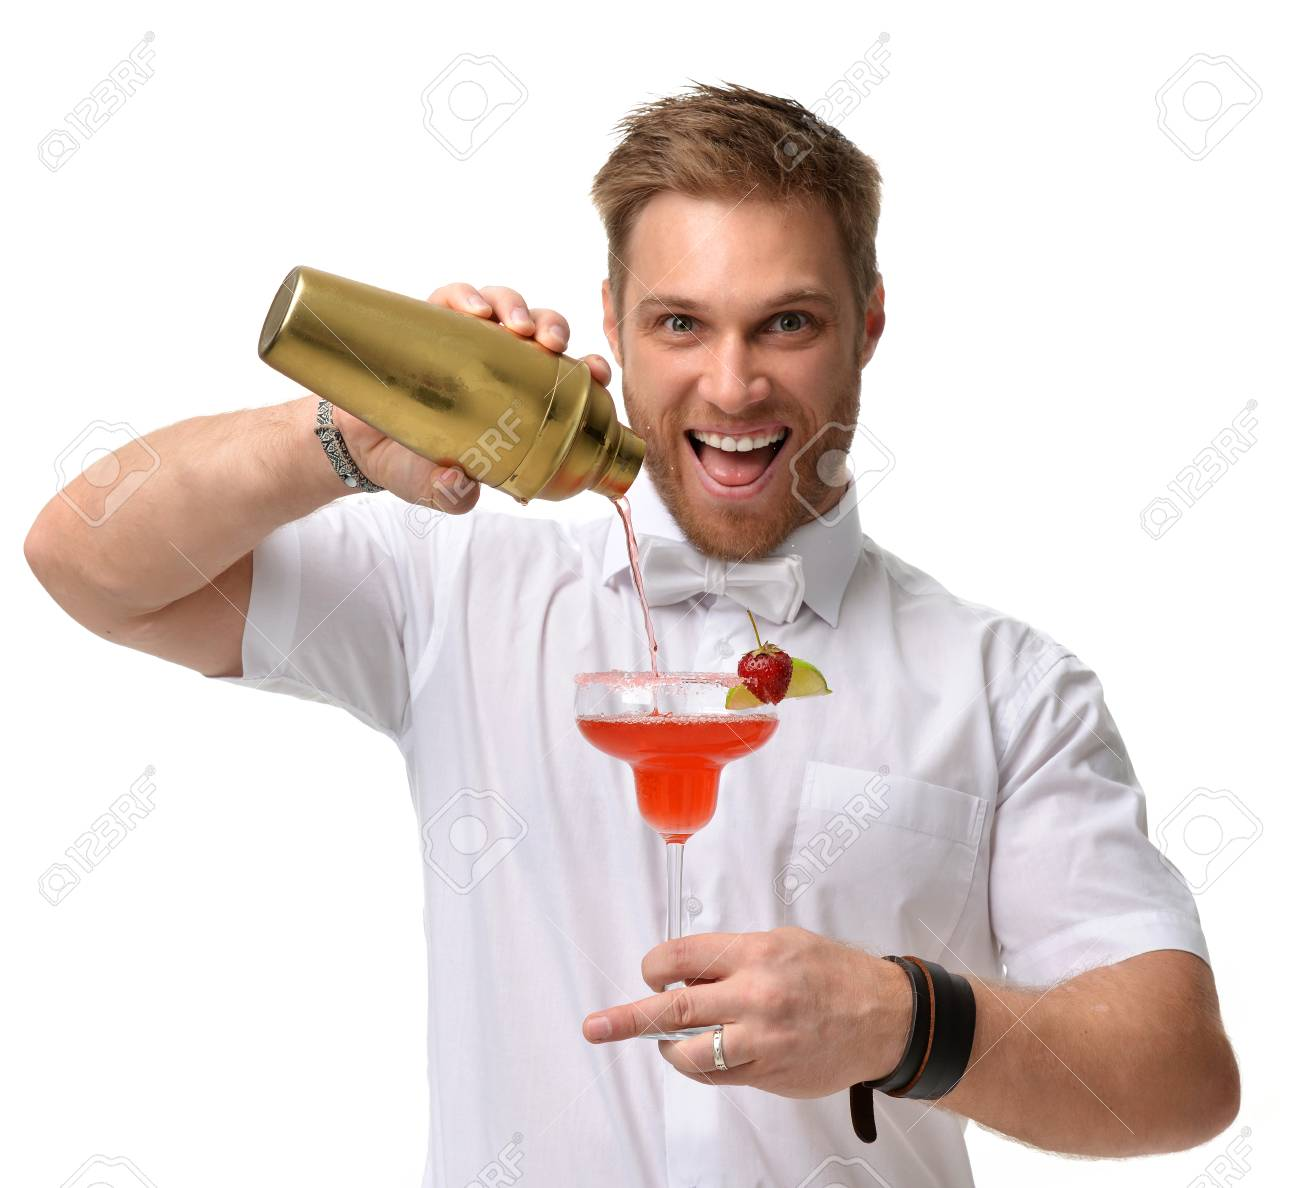 Bartender men is preparing red margarita cocktail with strawberry and lime. Hold big glass and pours alcohol from a gold shaker isolated on a white background - 88672033